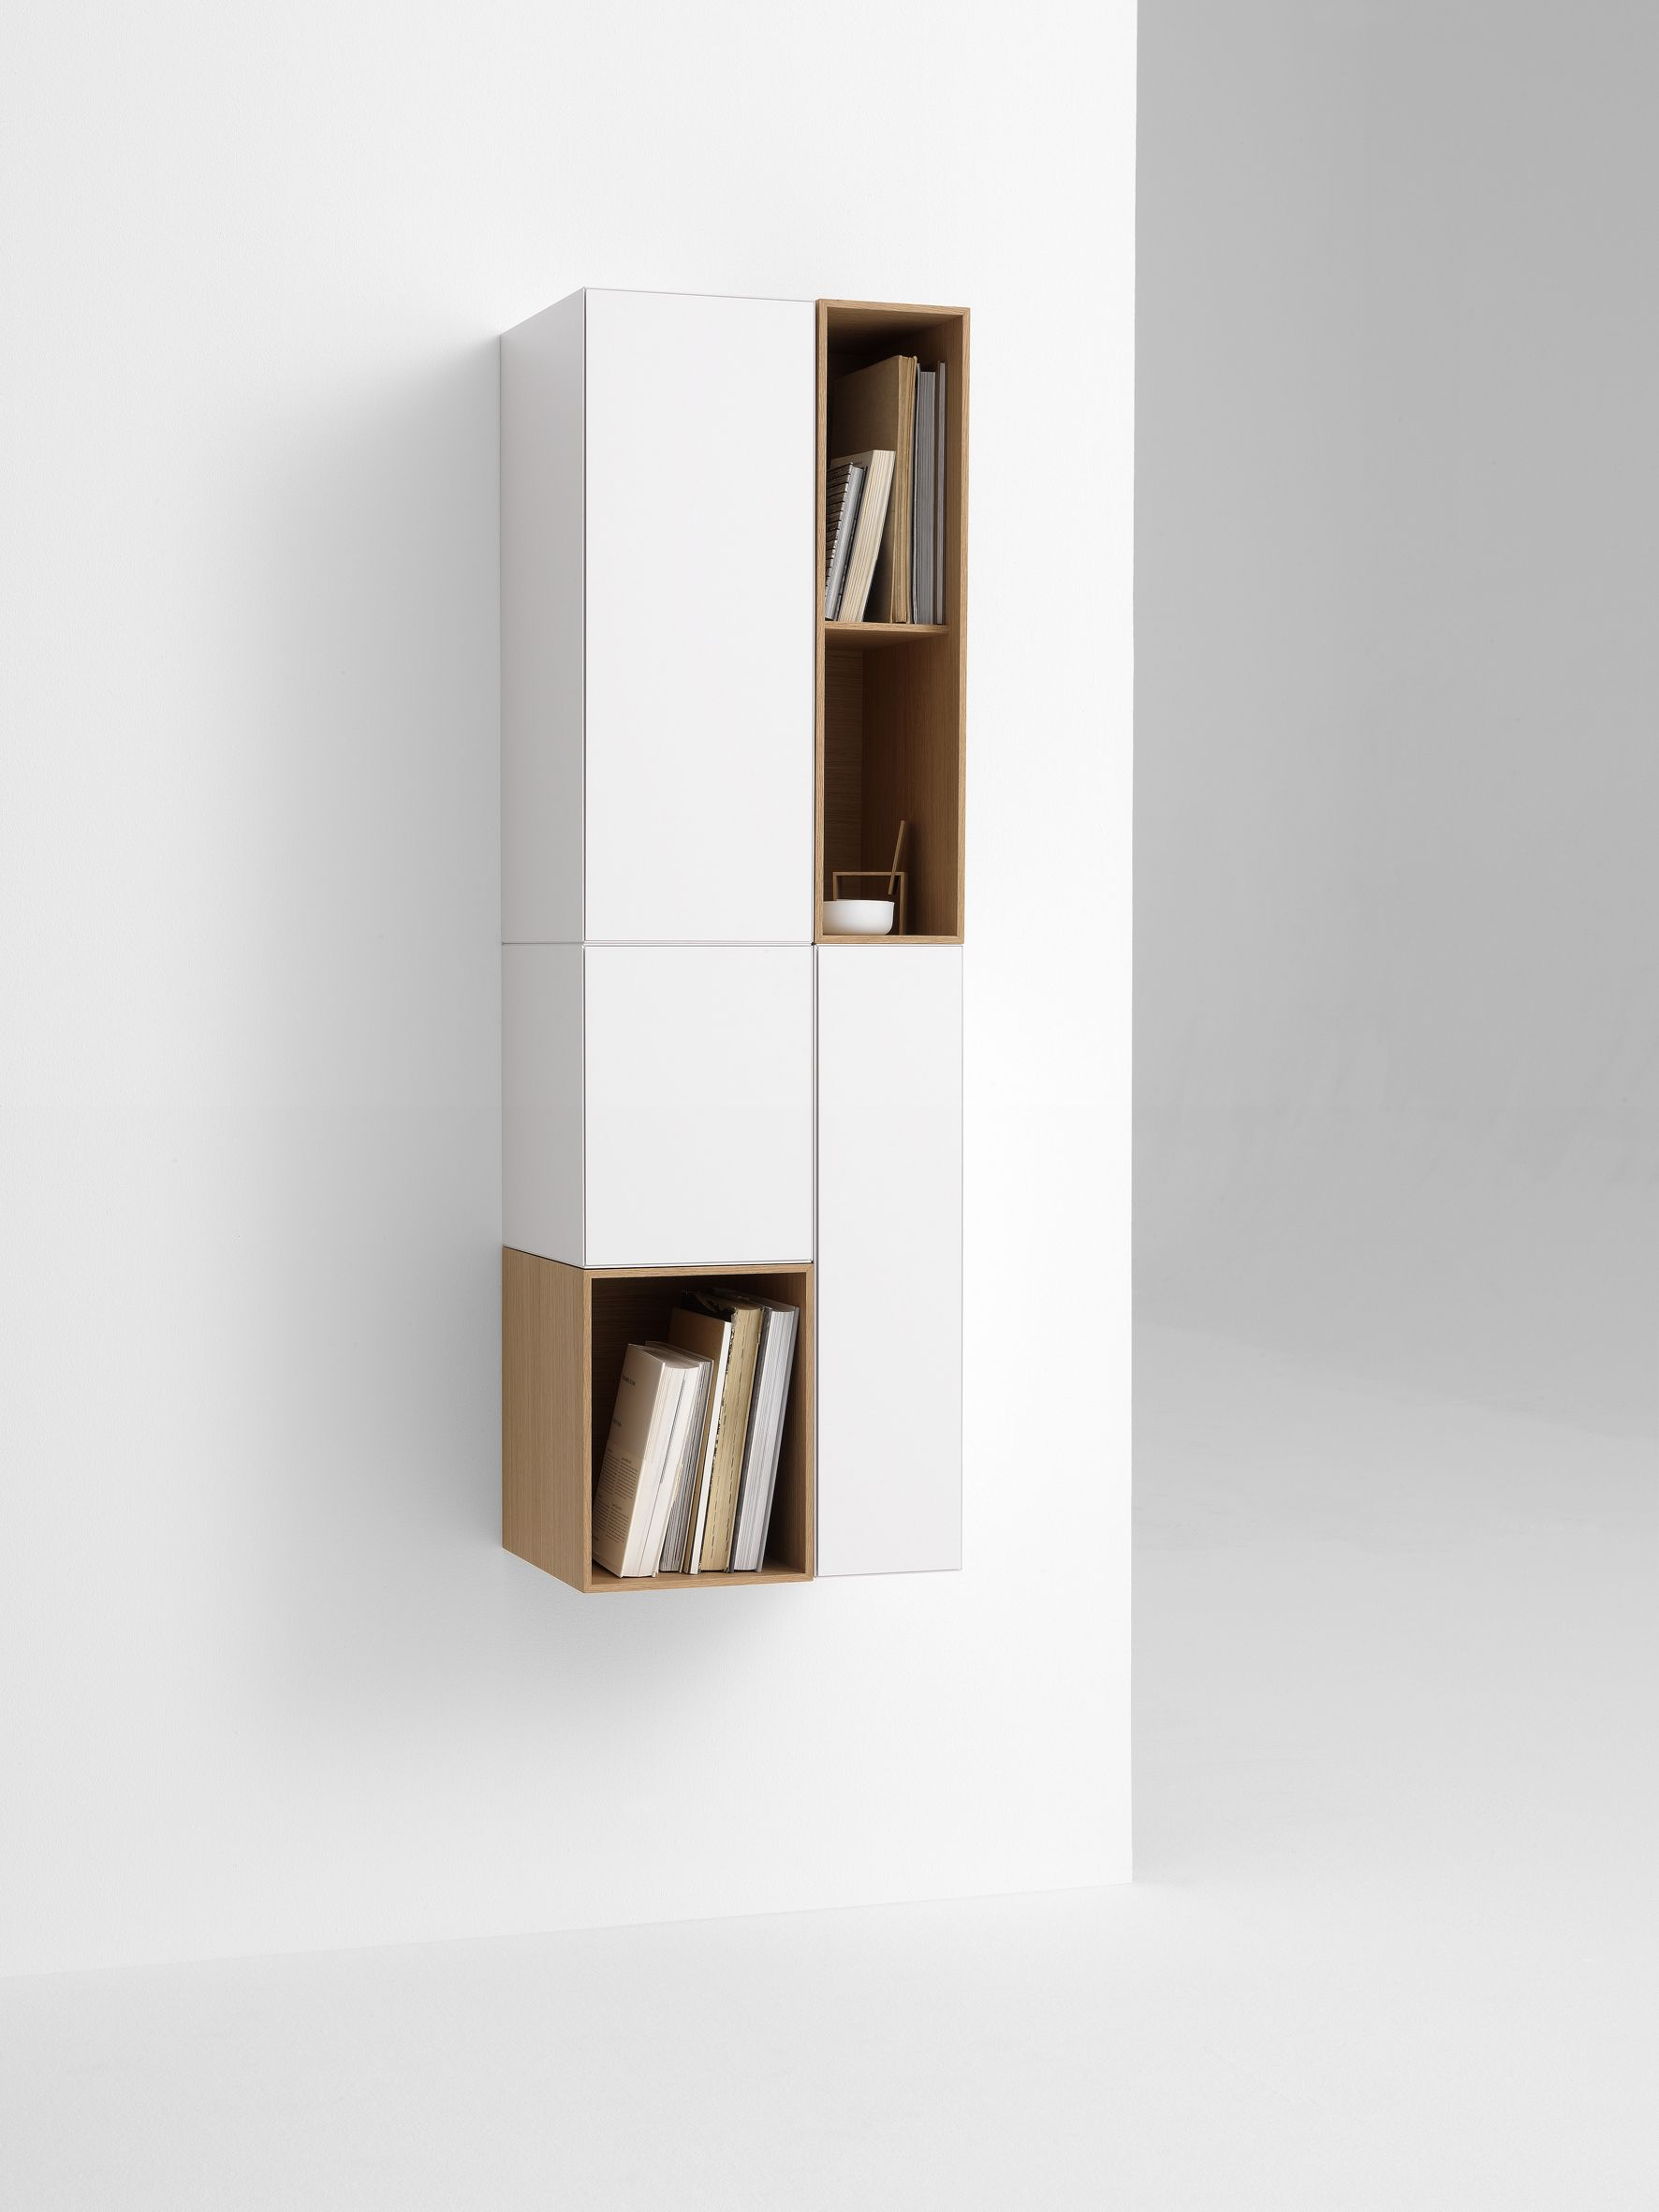 Duchdesign | Pastoe #design #white #color #Dutchdesign #Pastoe #kokwooncenter #201606